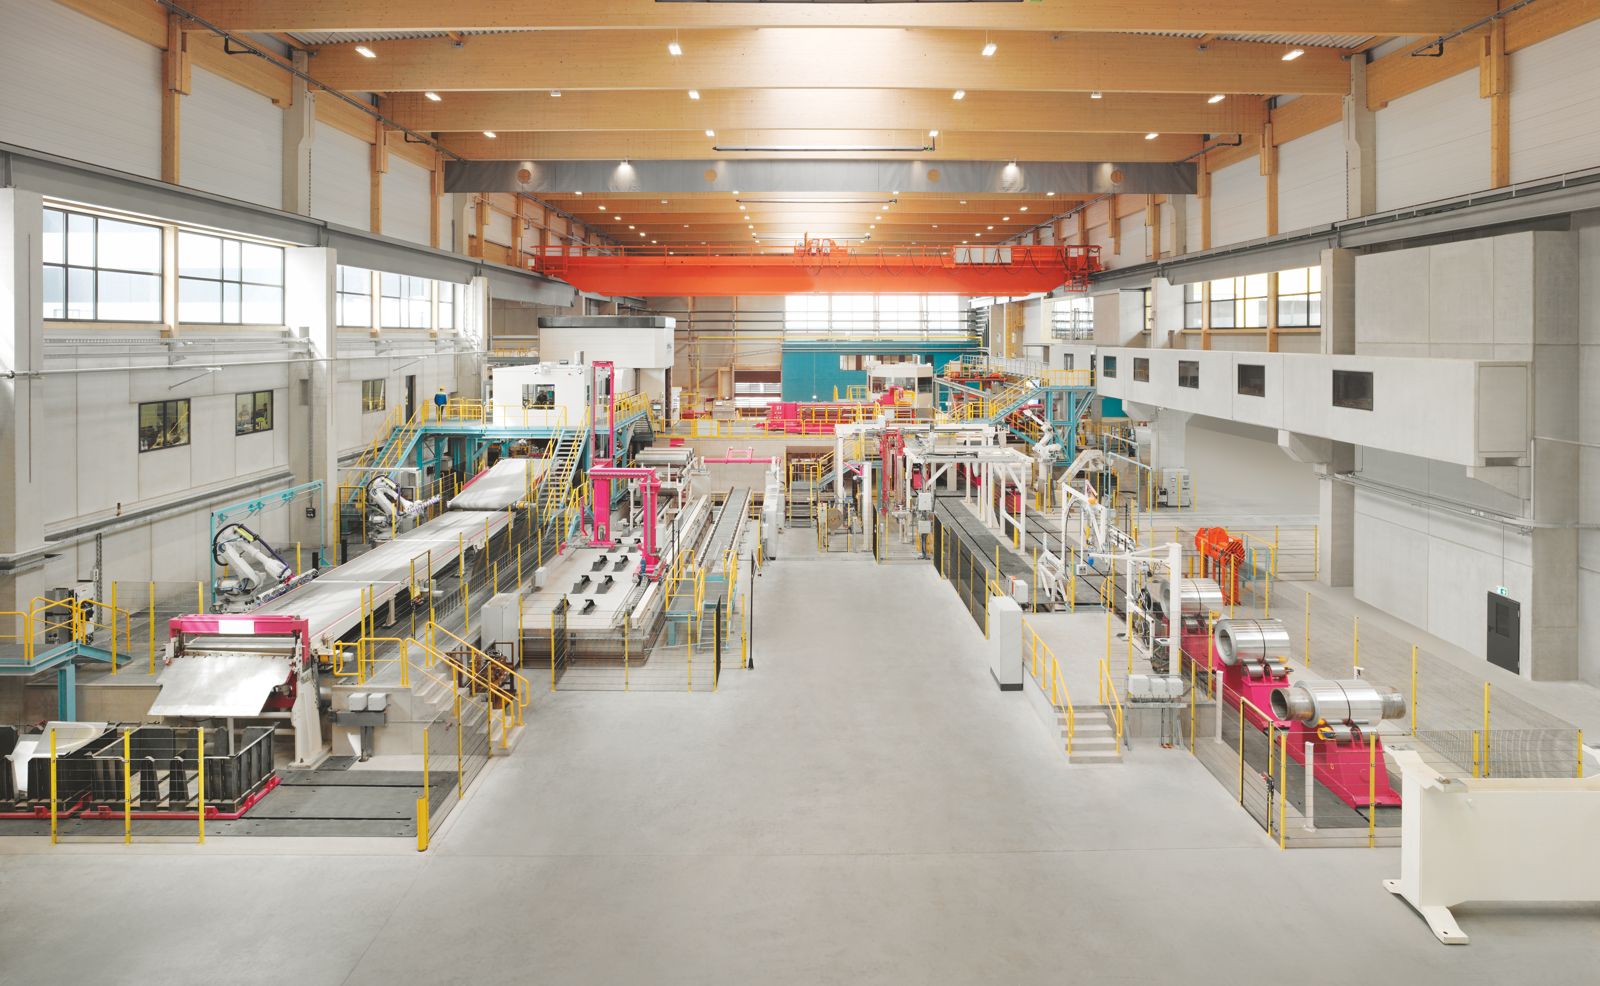 ARTICLE: AMAG Completes Massive Growth Plan - Light Metal Age Magazine